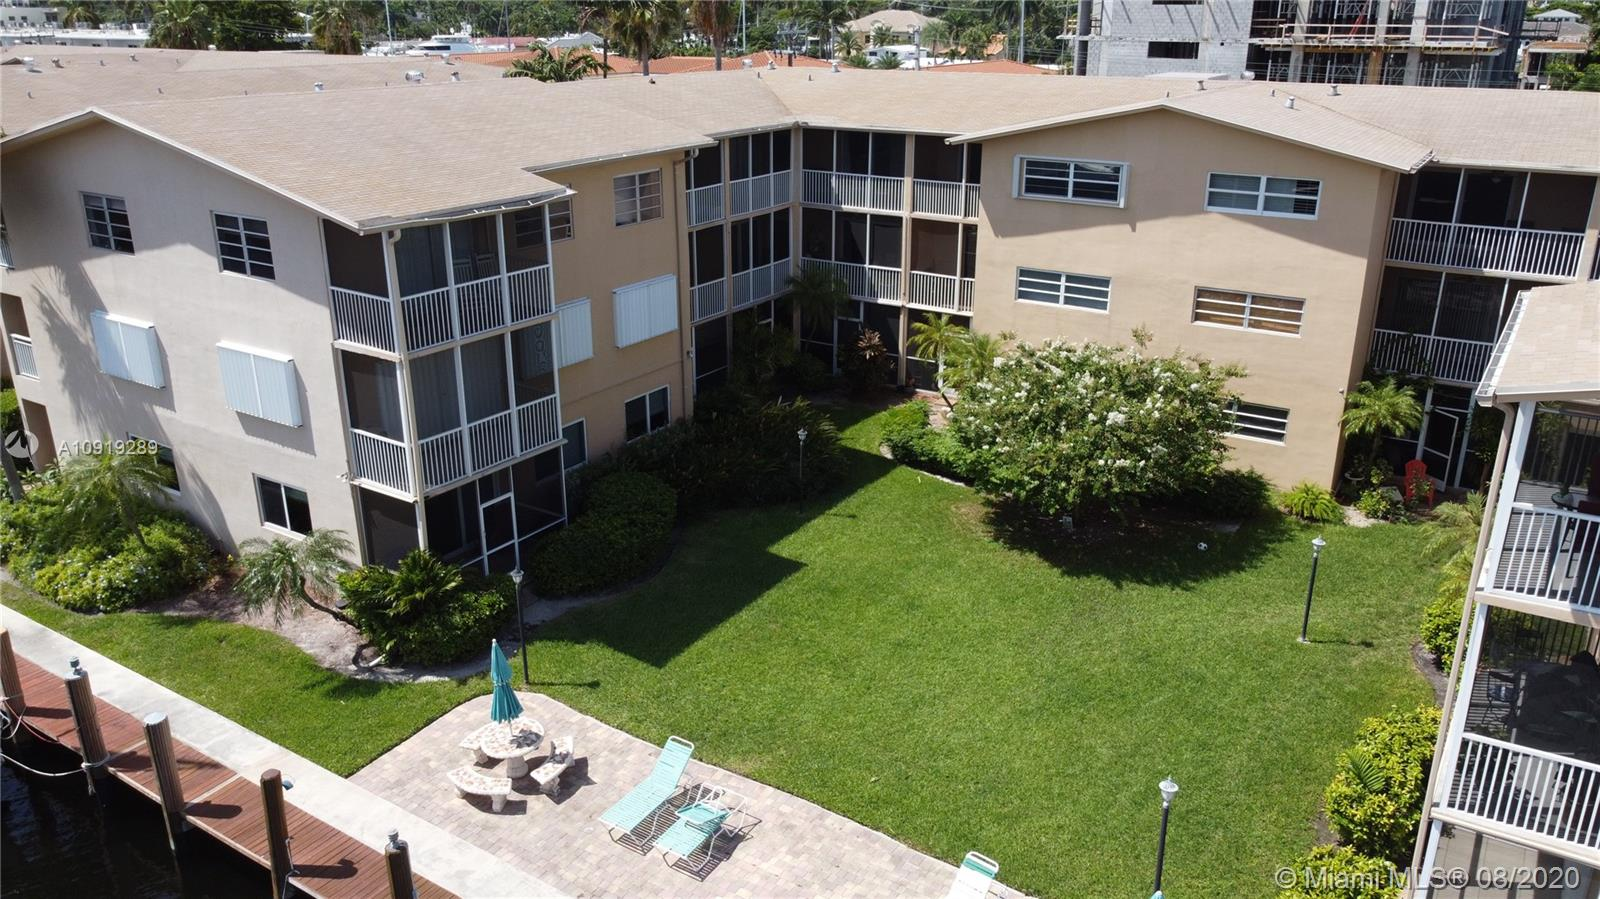 This updated 2/1.5 corner gem has a spacious floor plan that opens to the large, screened balcony from the living areas and one of the bedrooms.  It has plenty of storage space and relaxing views of of the dock, canal and green spaces.  Quite entertaining to watch the yachts go by!  The amazing location is just down the street from the 15th Street Fisheries, Cooley's Lading with boat ramp, Lauderdale Marina and water taxi.  It is also close to many restaurants, shops, Port Everglades, the airport and downtown Ft. Lauderdale.  Immediate rentals anywhere from 3 to 12 months are allowed making this a either a great place to live or a good investment.  Dock spaces availability is on a first come first serve basis and managed by the condominium association.  Storage cage a possibility.